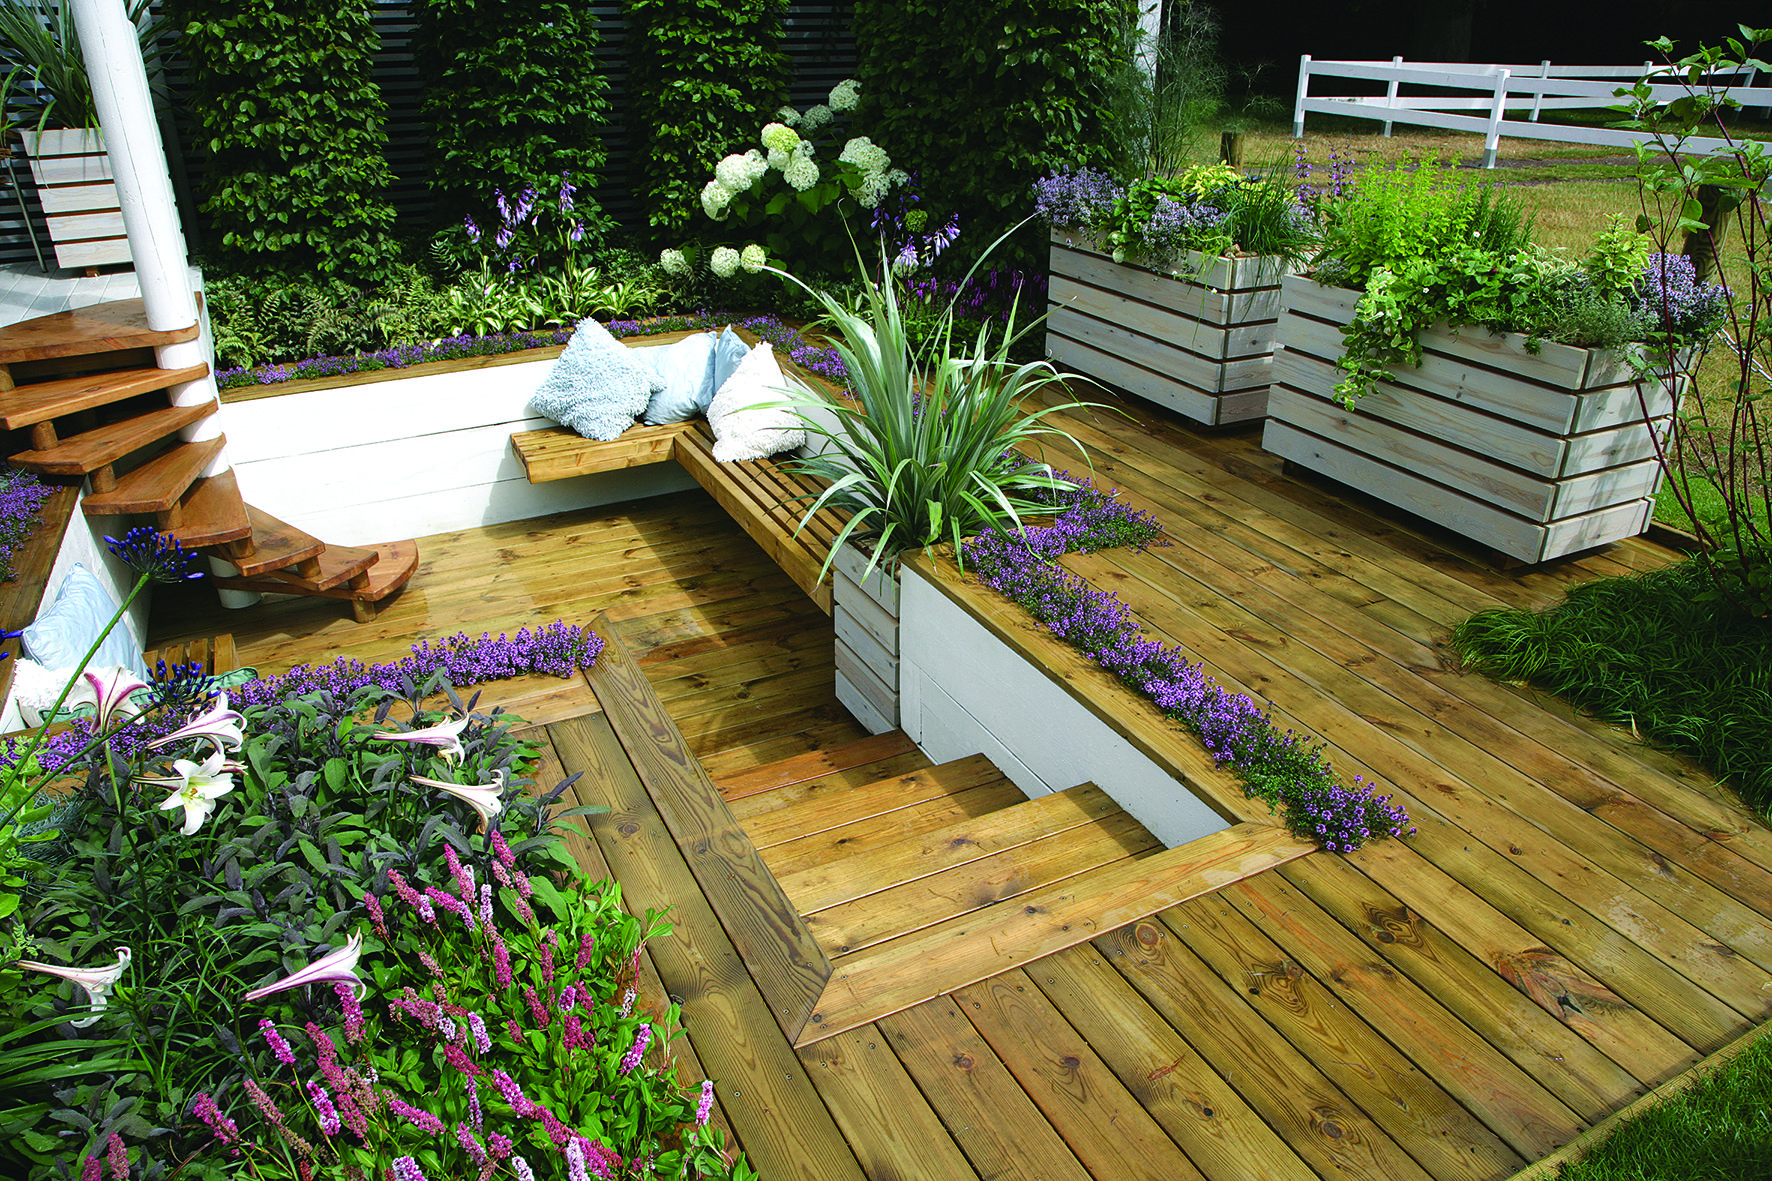 23 Gorgeous Small Wooden Deck Ideas For Small Backyards Deck Garden Small Backyard Decks Small Garden Decking Ideas